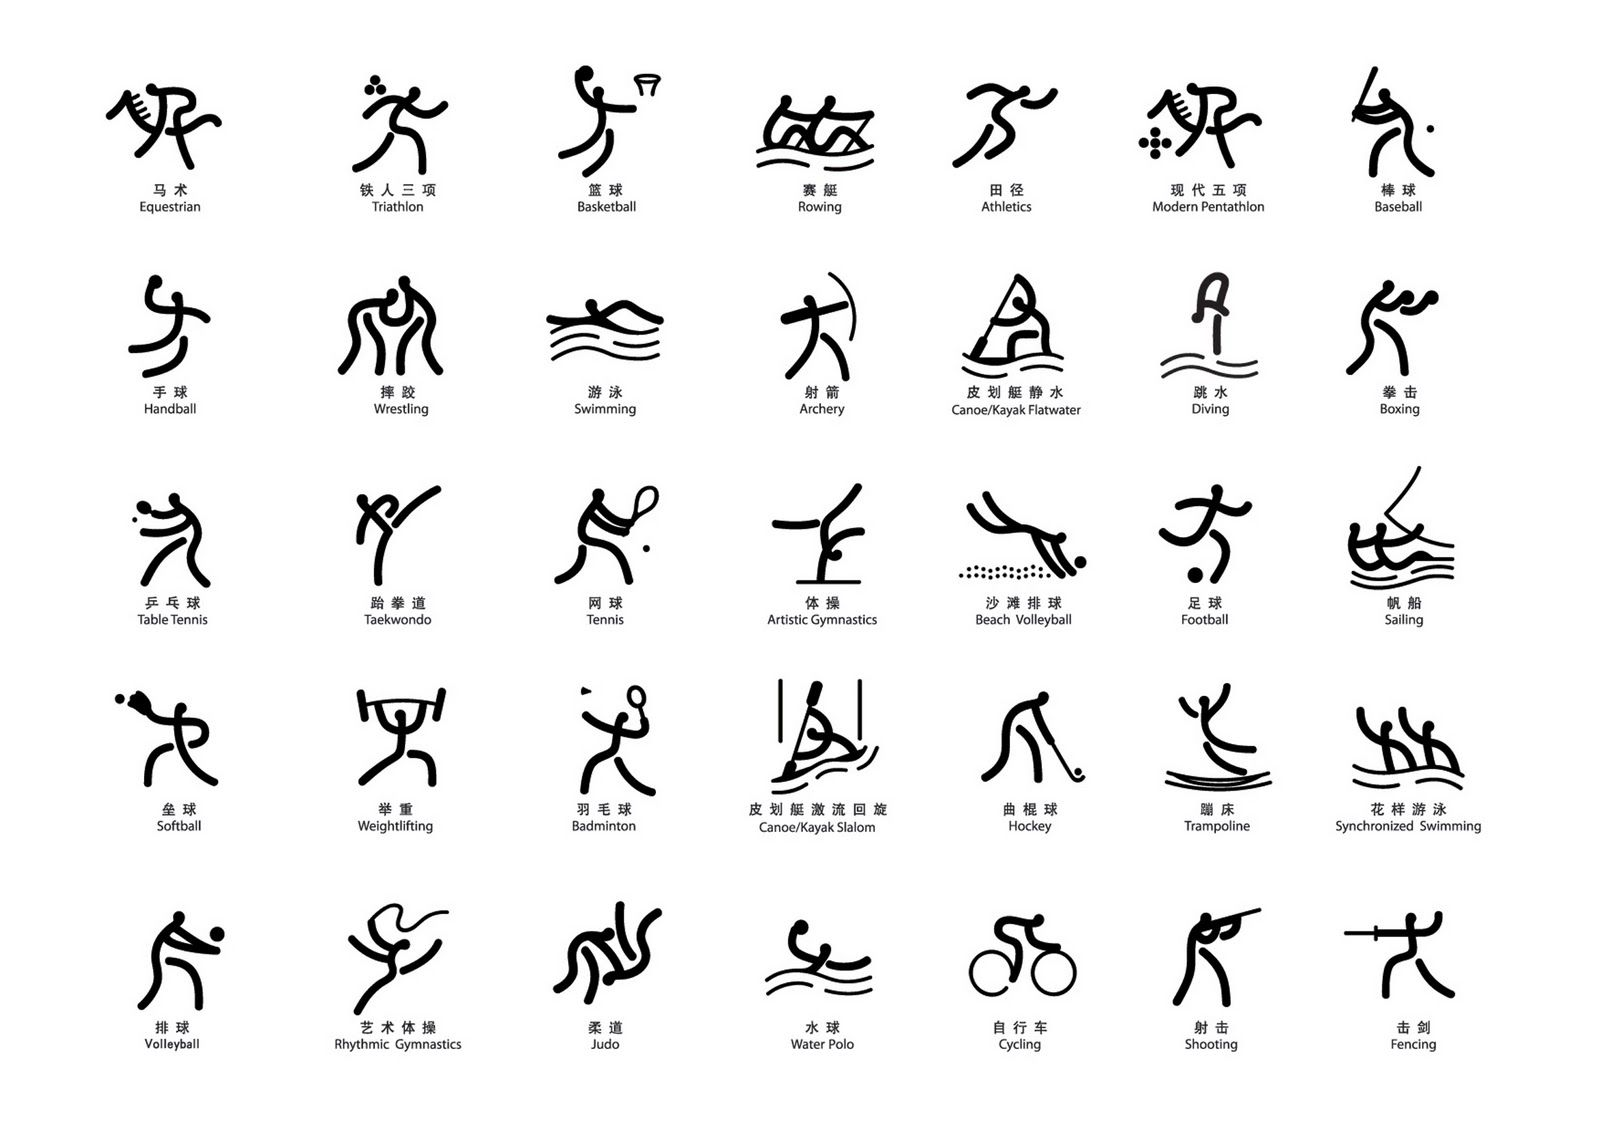 Olympic pictograms beijing icons and olympic icons min wang art director hang hei wang jie design and arcog team and cafa team design pictograms of the beijing 2008 olympic games biocorpaavc Images